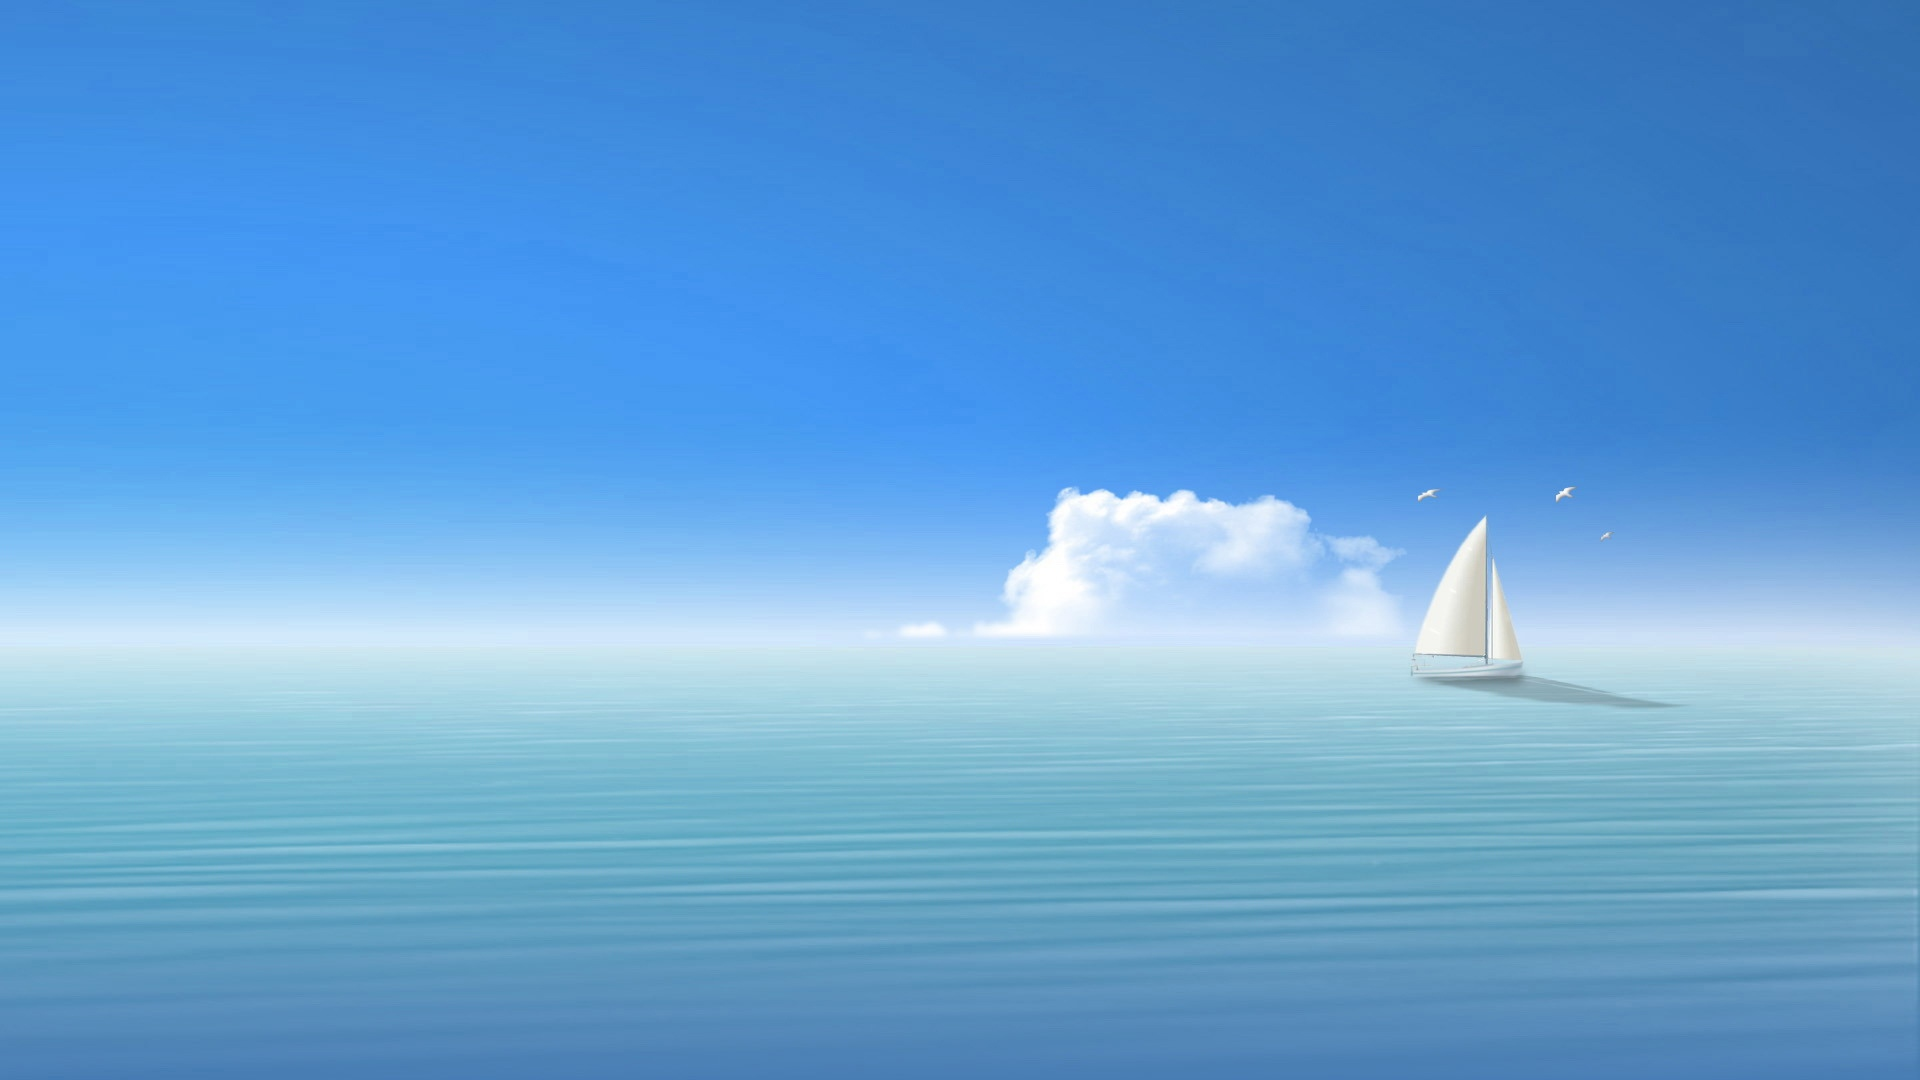 Earnings Disclaimer >> Download Wallpaper 1920x1080 blue, sea, ship, sky Full HD 1080p HD Background